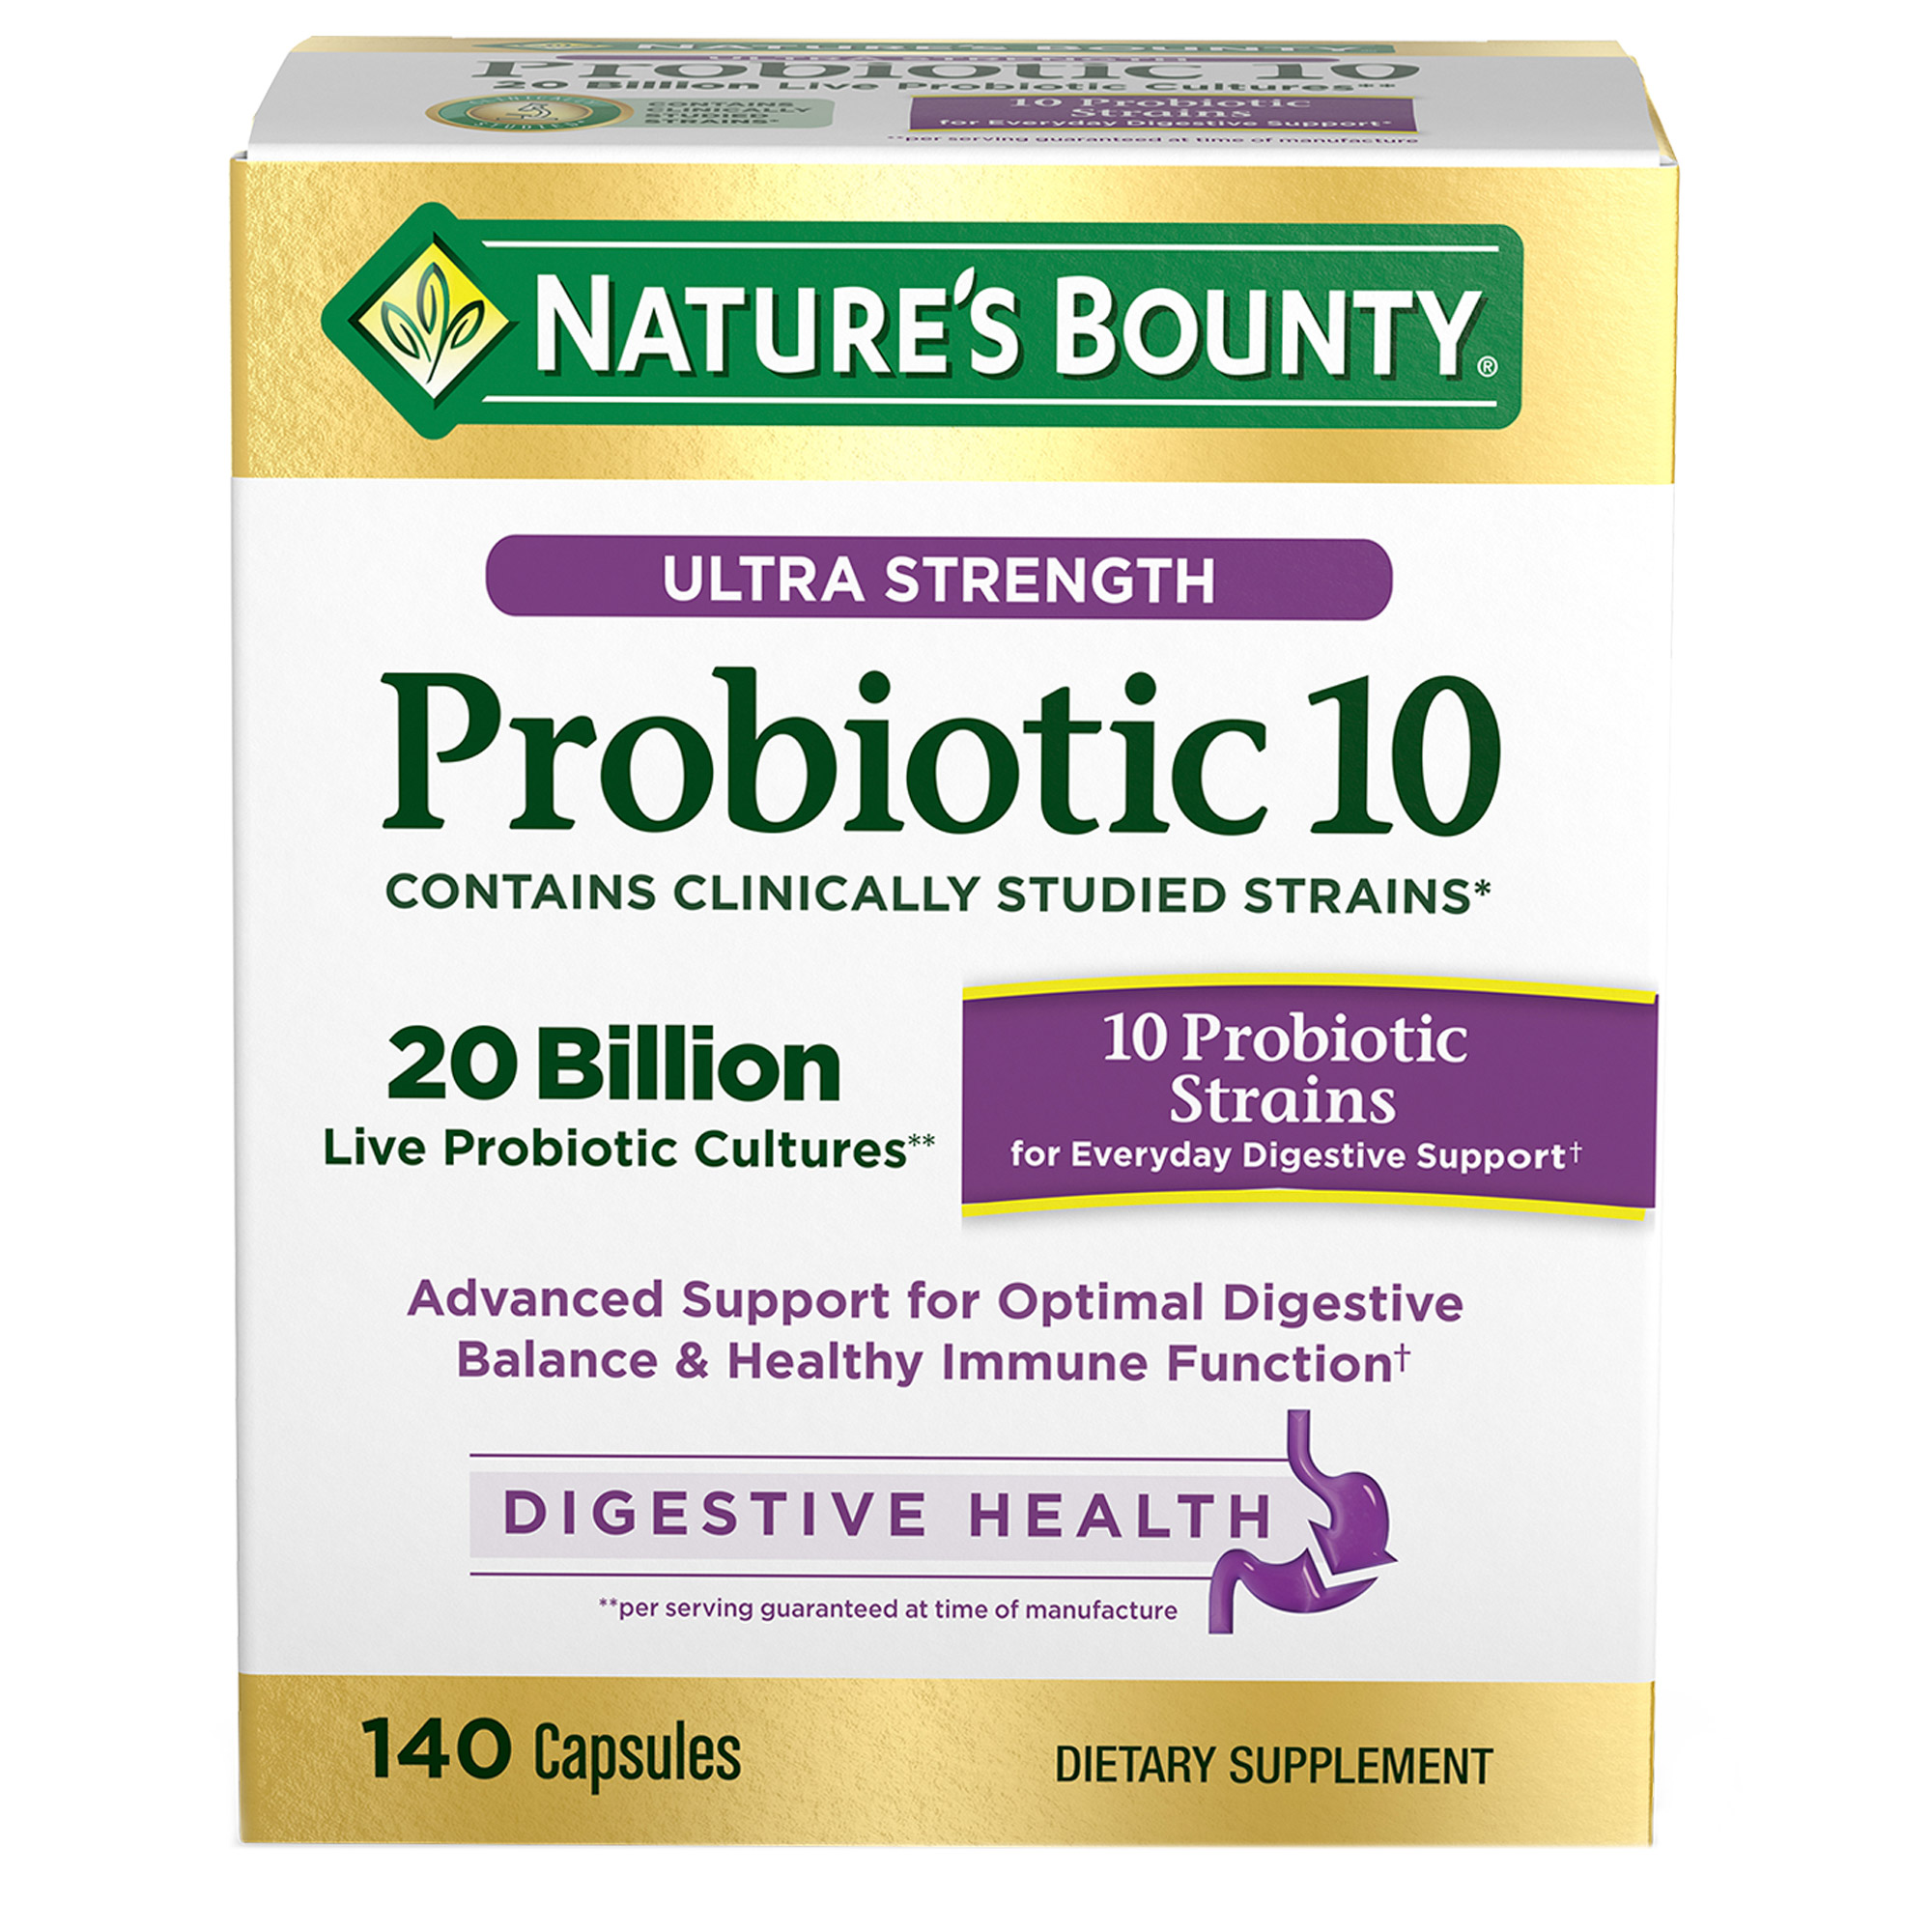 Nature's Bounty Ultra Strength Probiotic 10, 140 Capsules